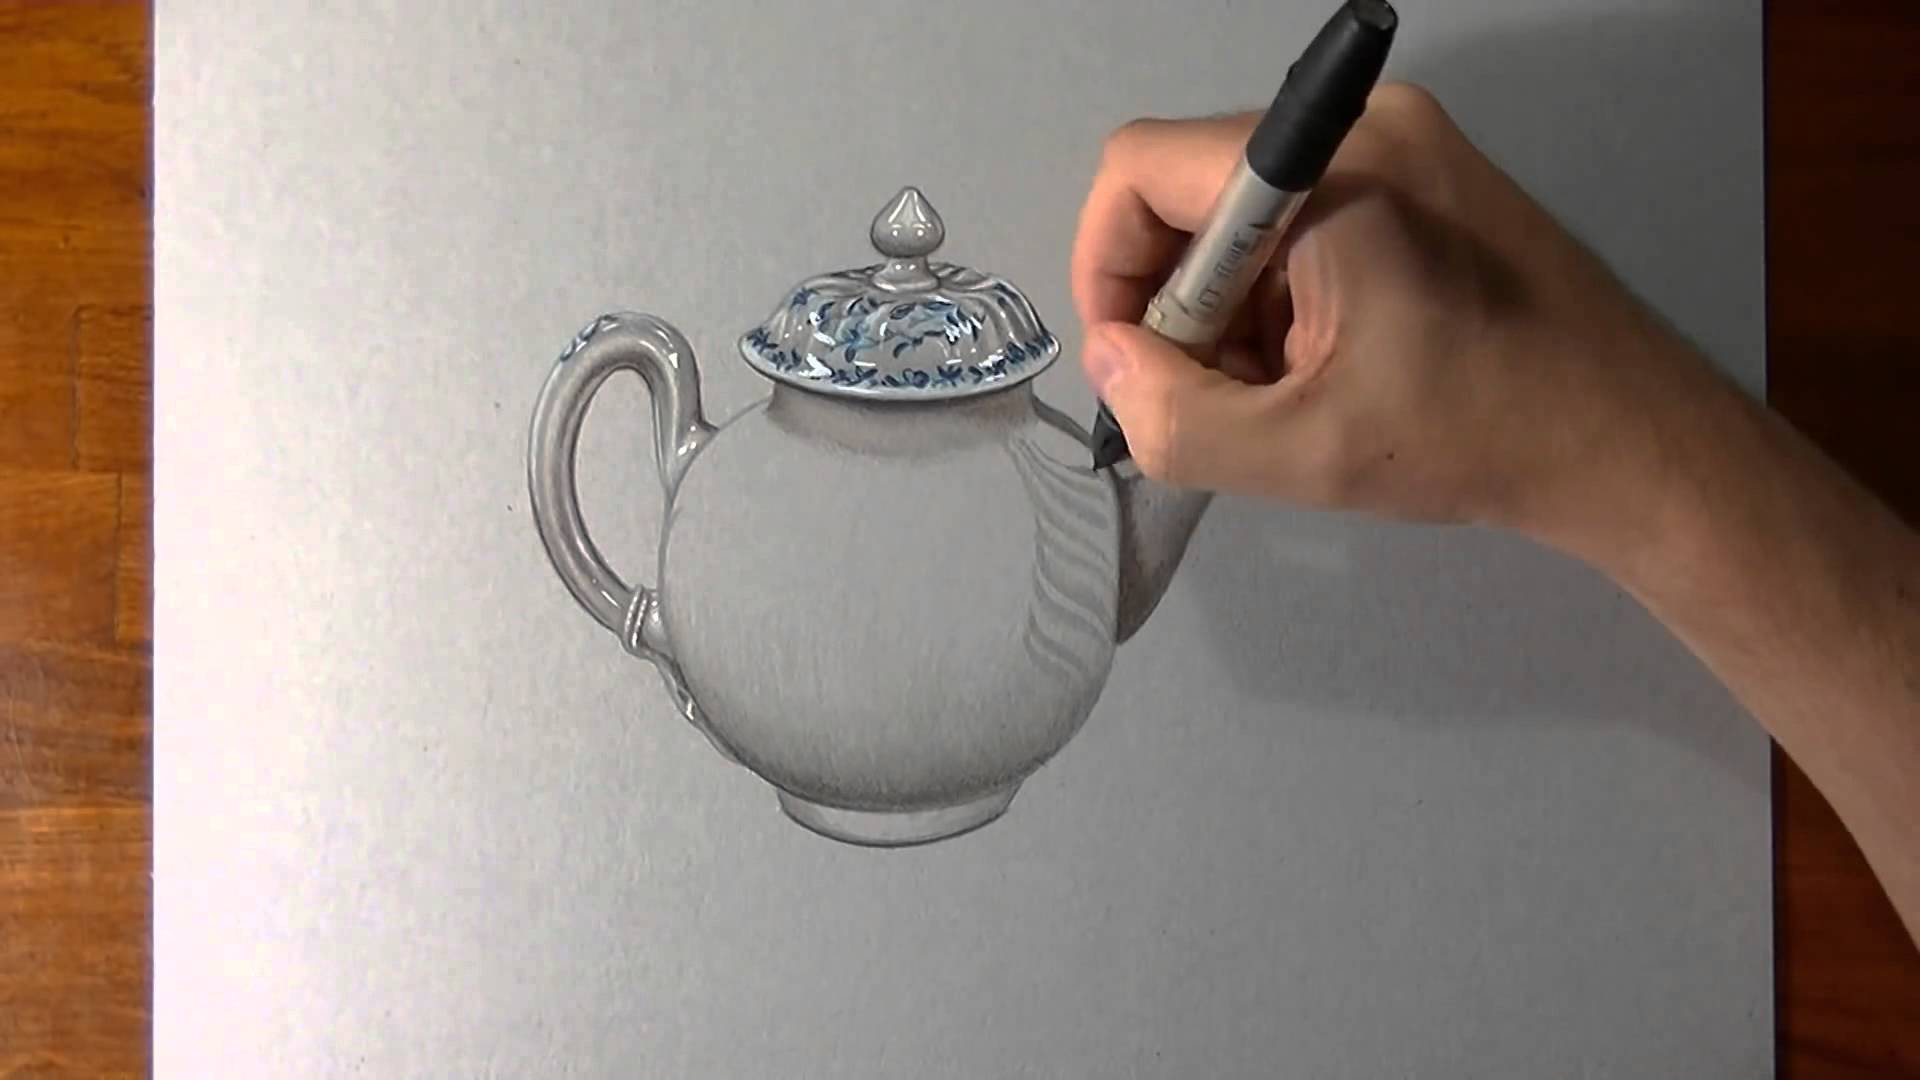 Drawn teapot porcelain From teapot ARCMovies? Unsubscribe a